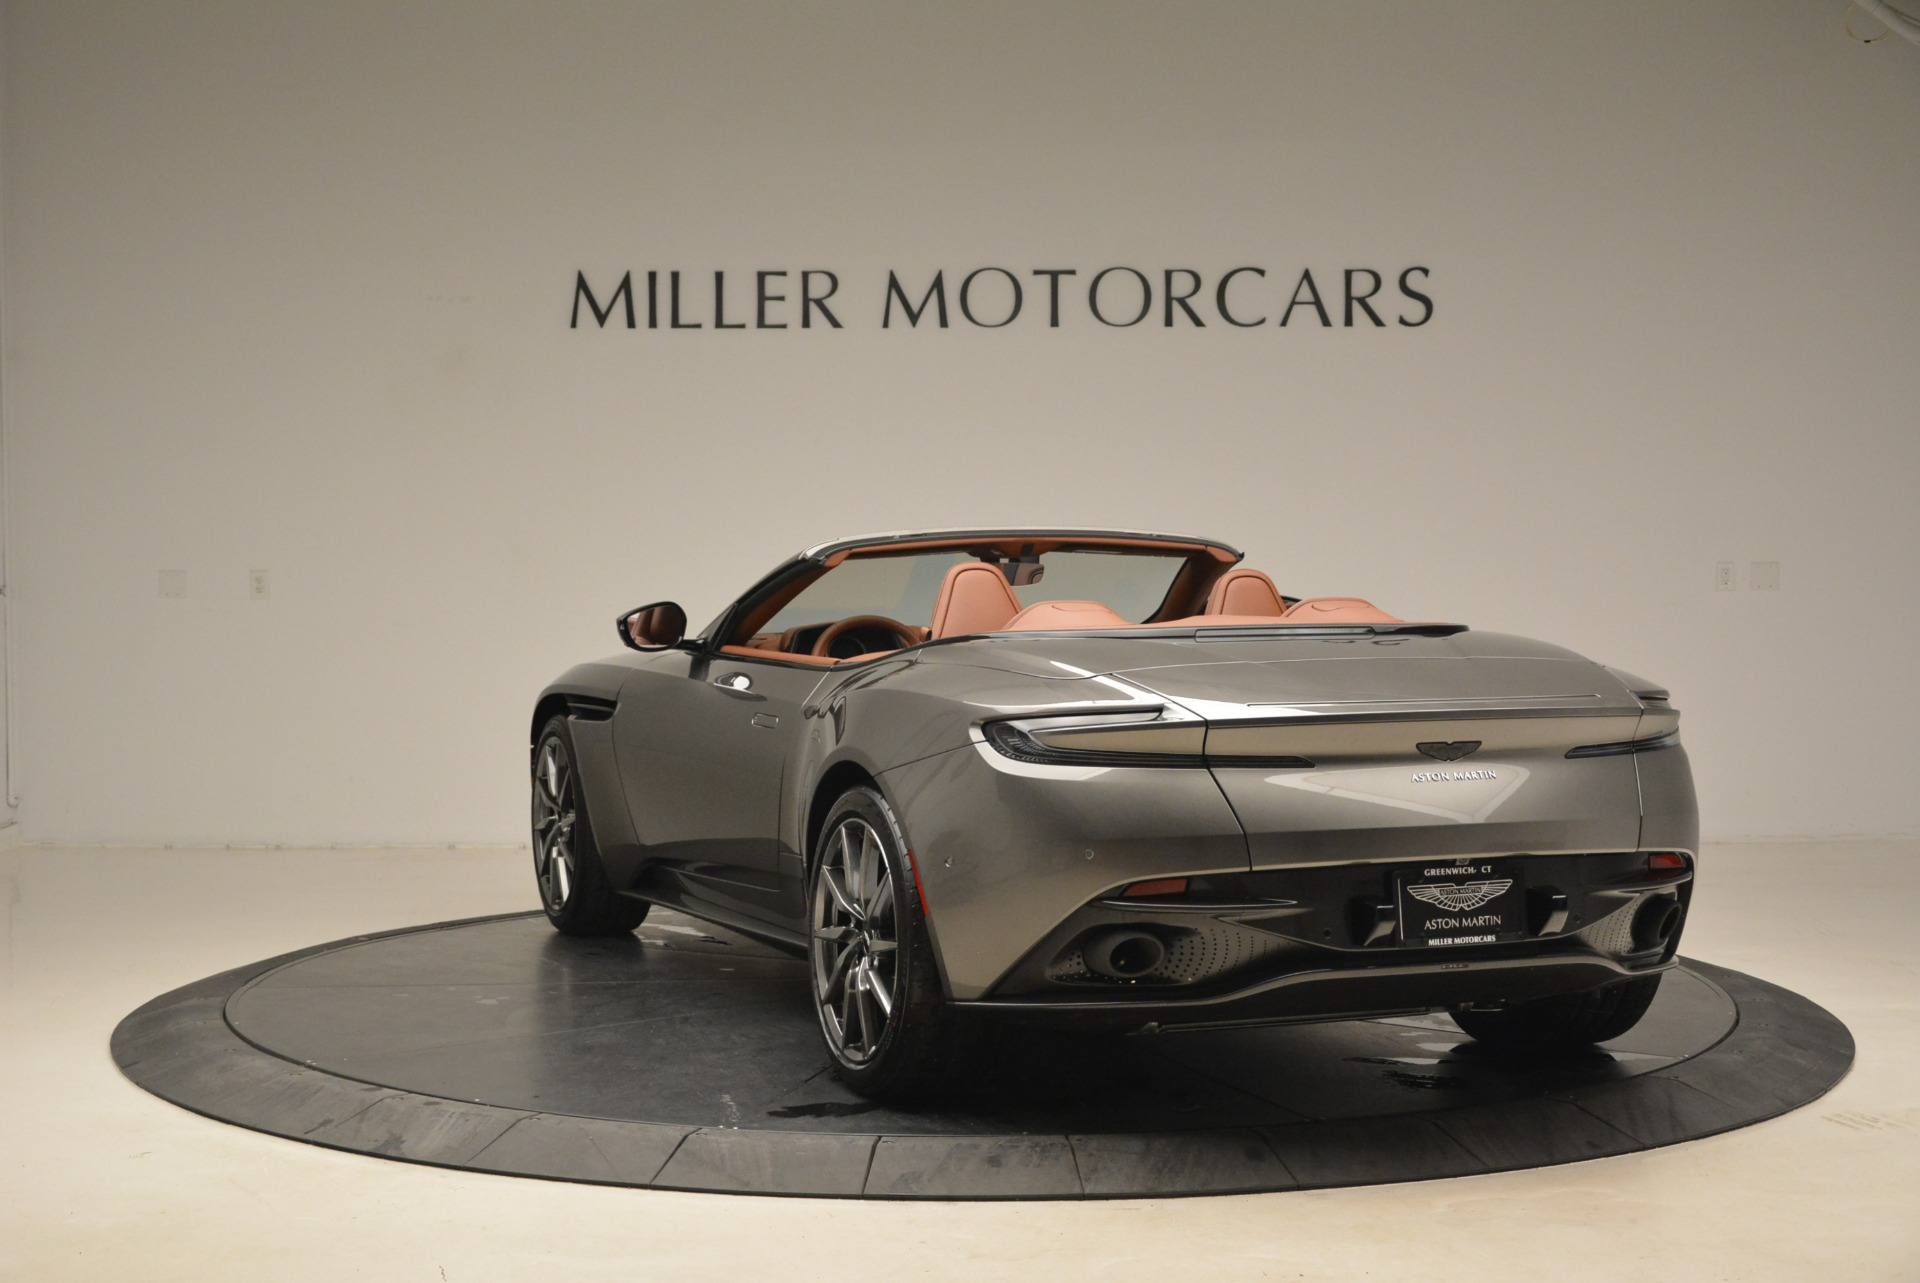 New 2019 Aston Martin DB11 Volante  For Sale In Greenwich, CT. Alfa Romeo of Greenwich, A1284 2209_p5